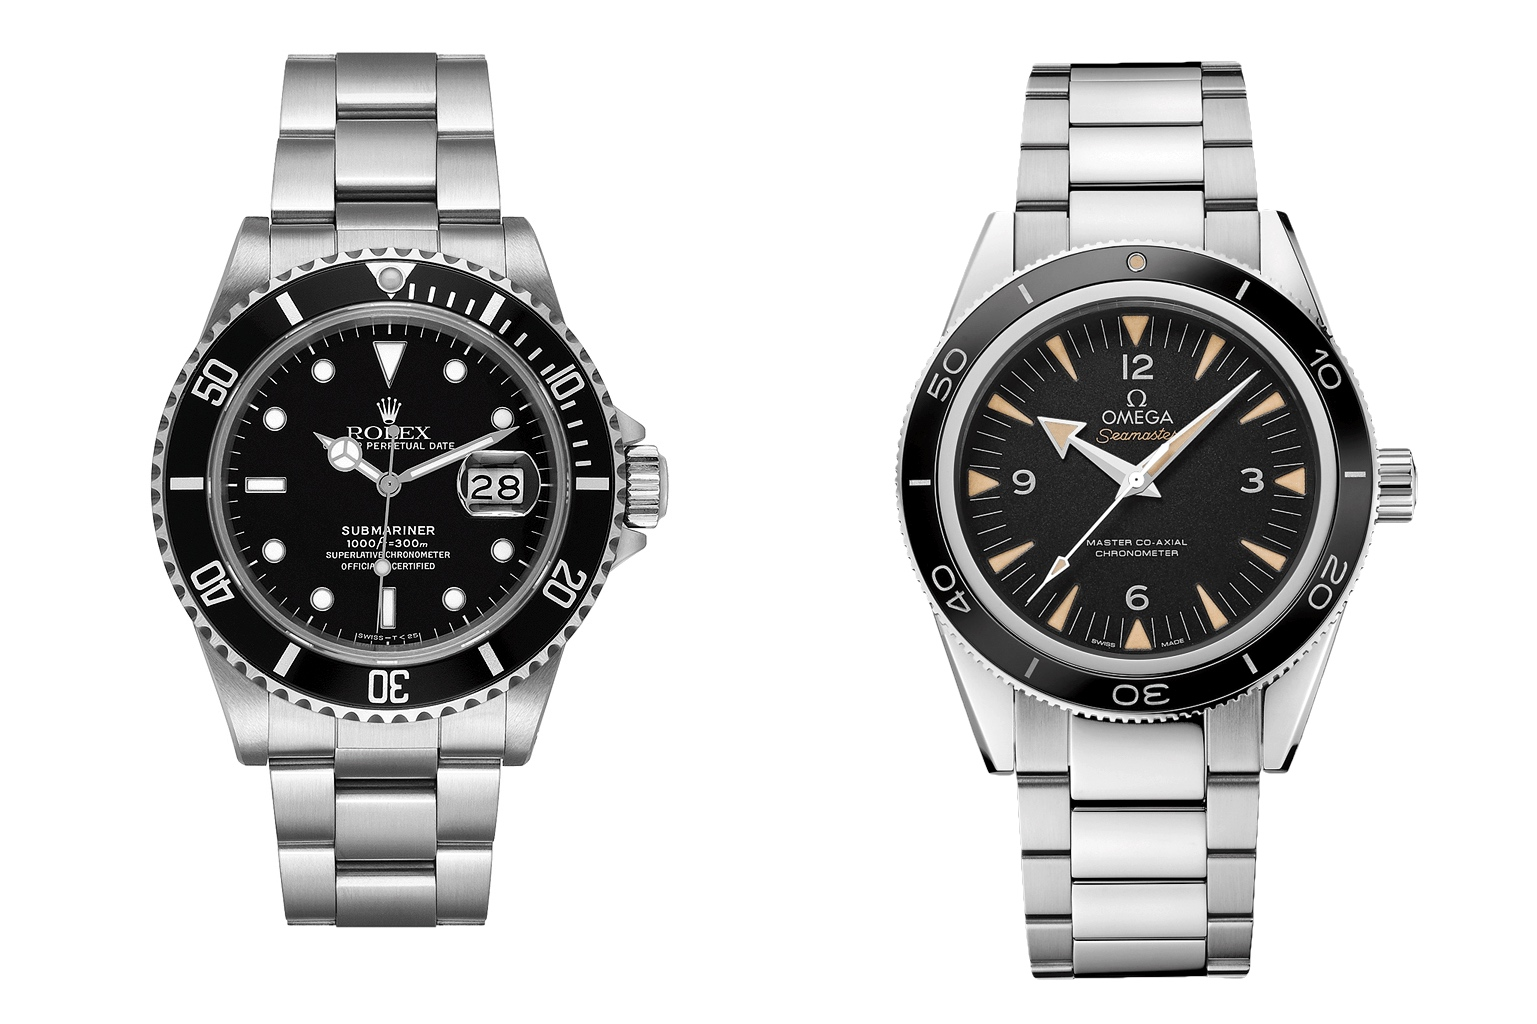 Rolex Submariner vs Omega Seamaster 300